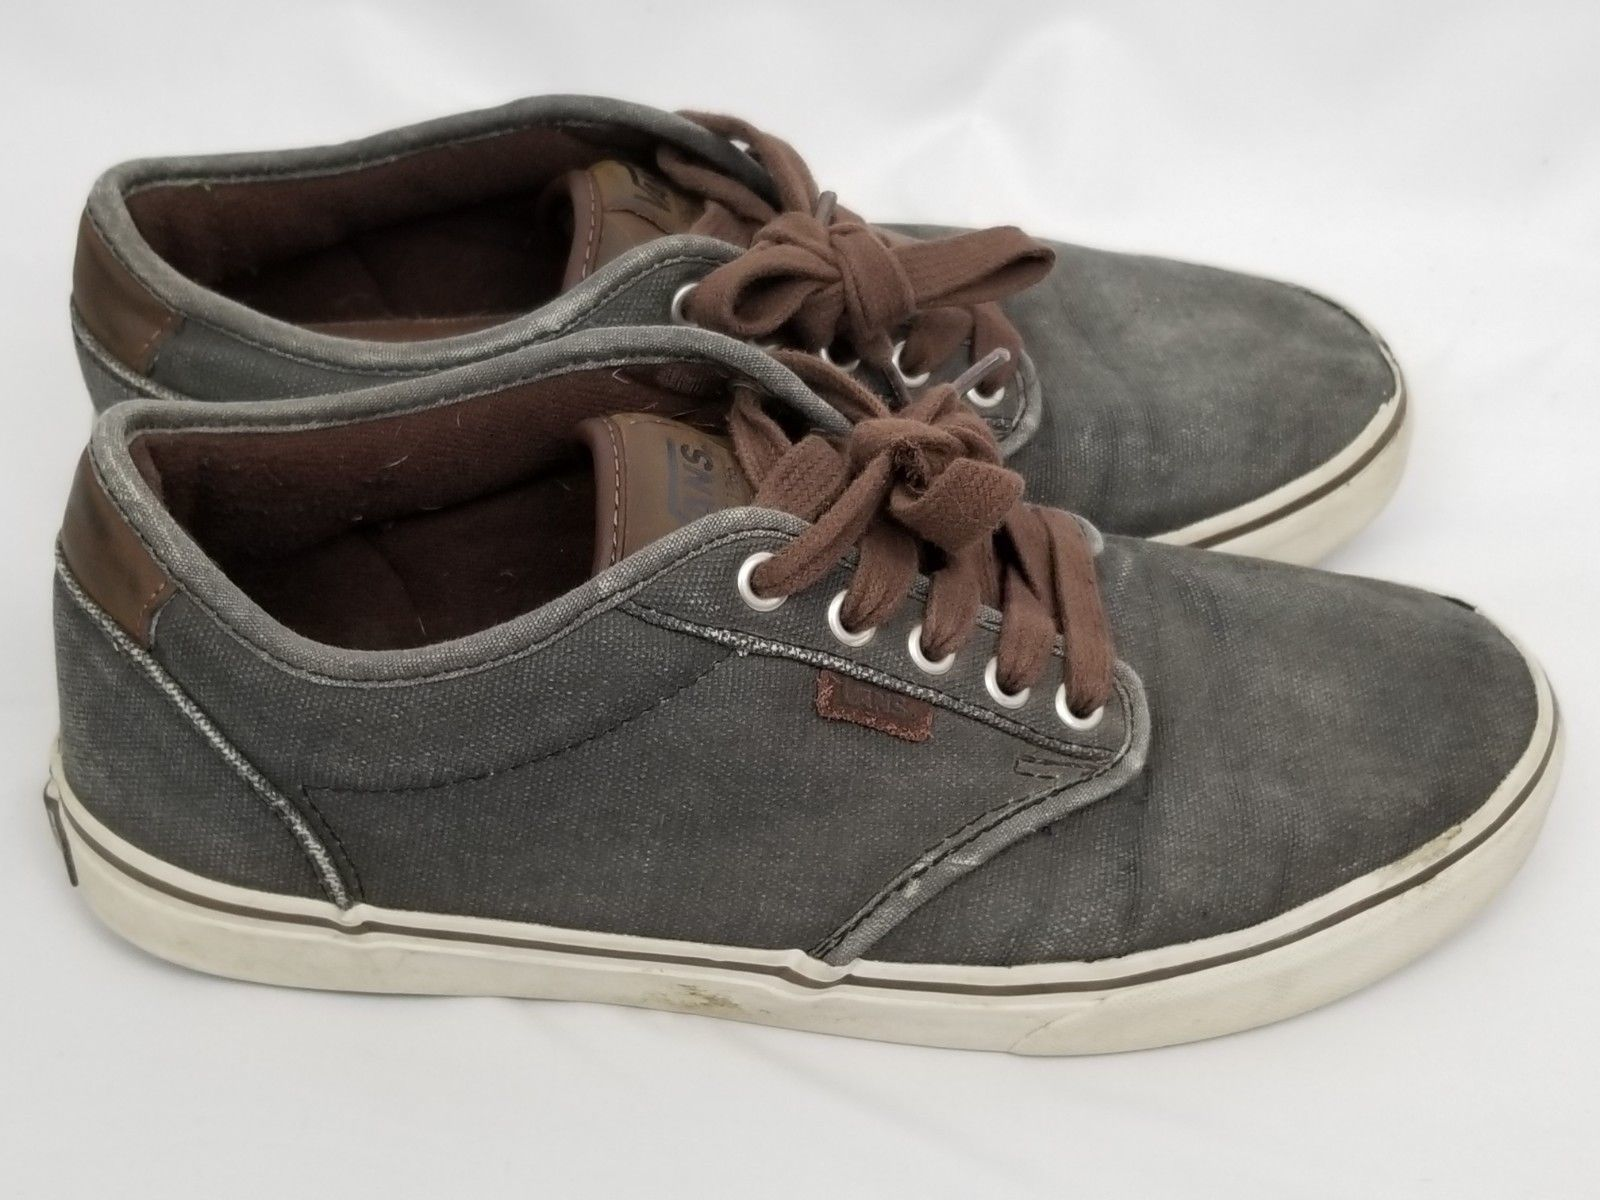 Mens Size 10 Gray Brown Vans Sneakers Shoes Lace Up 721356 image 5